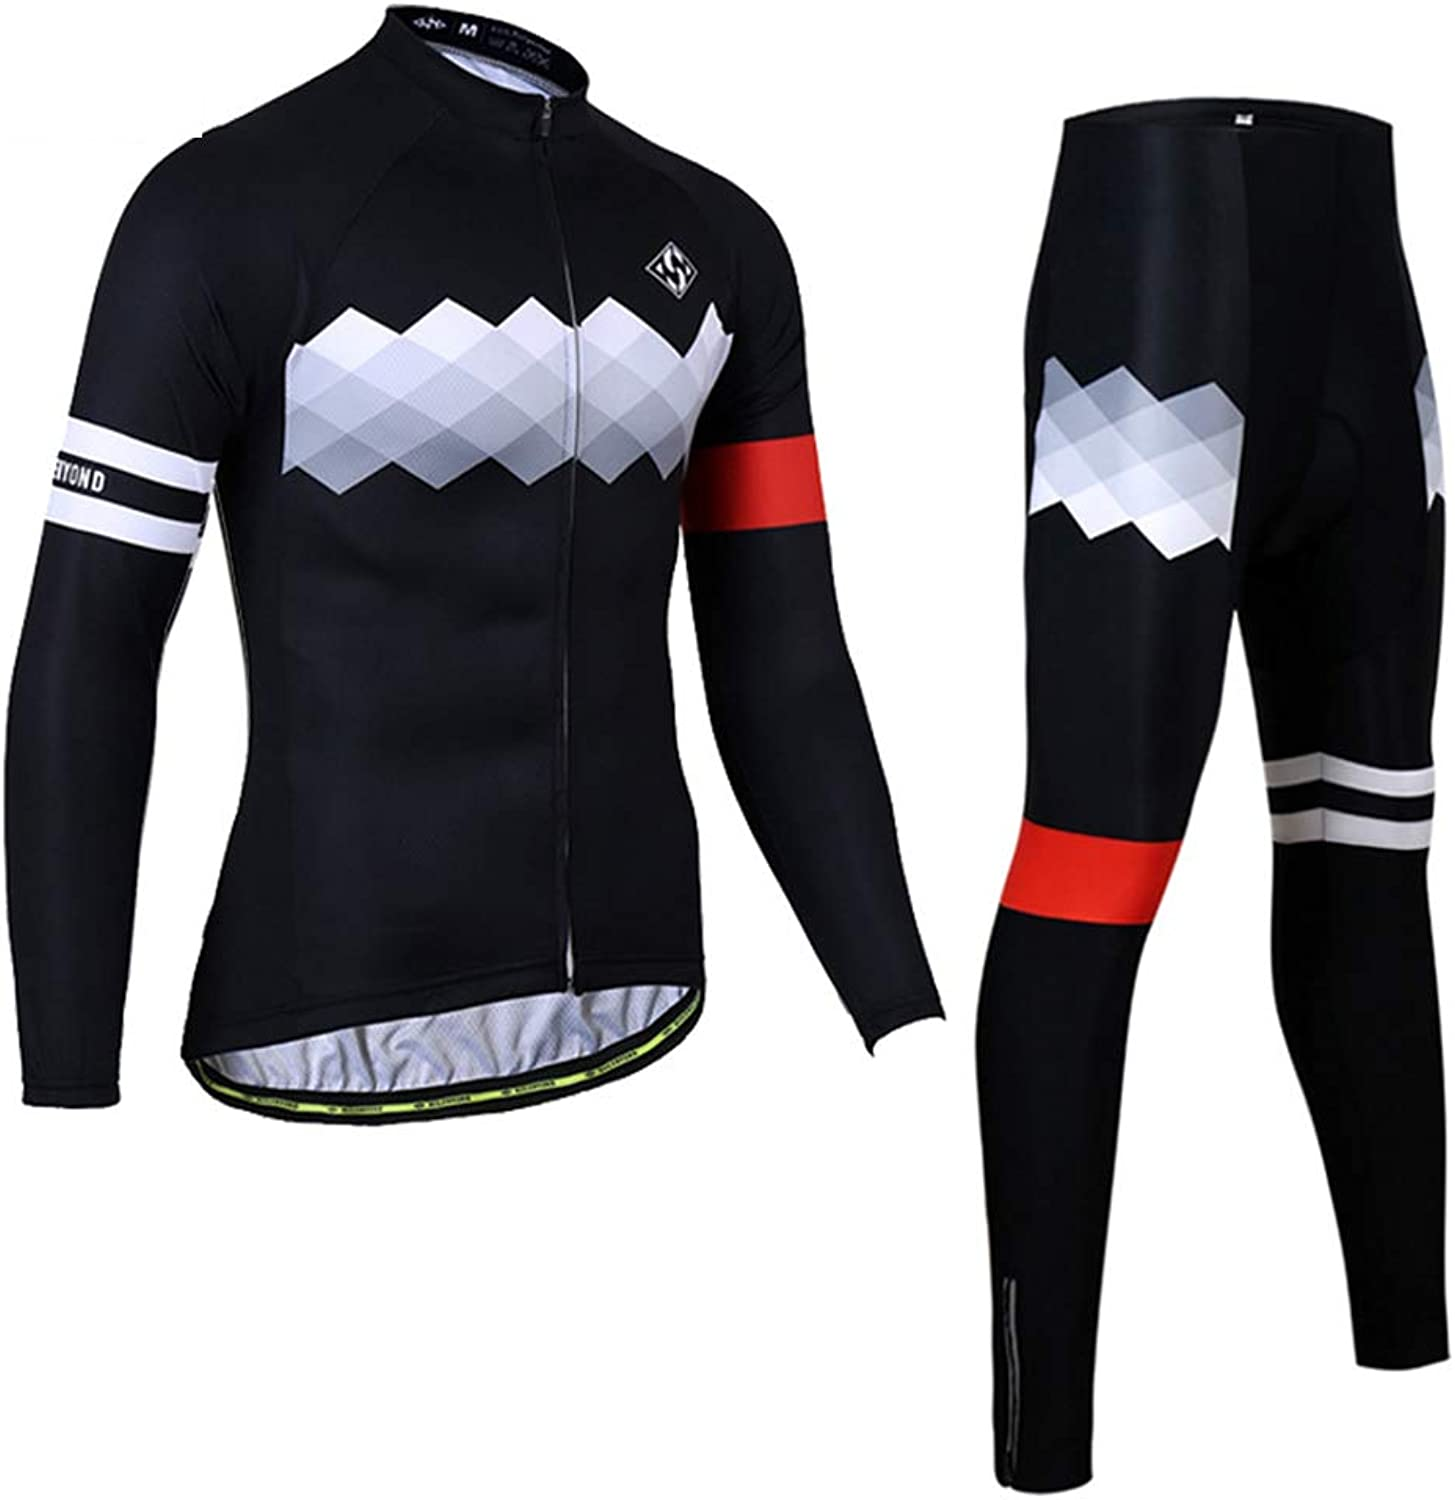 9bda7d75ca8f98 Men Cycling Clothing Sets Long Sleeve Tops Trouser Trouser Trouser  Breathable Quick Dry Casual Outdoor Sportswear Running Clothes,B,XS b35308